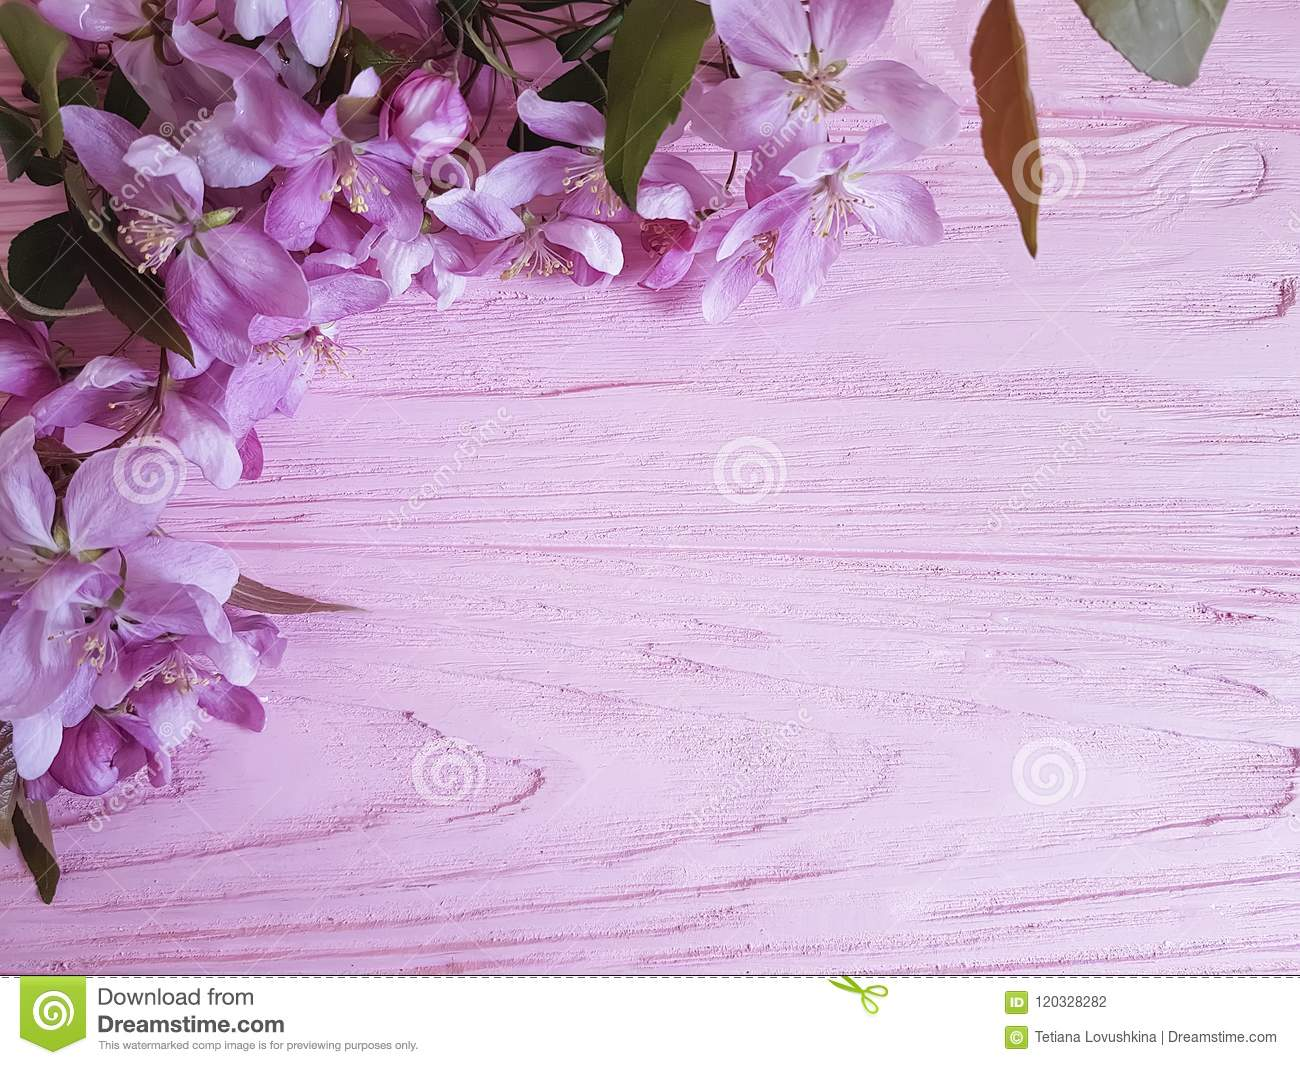 magnolia romantic on a wooden background